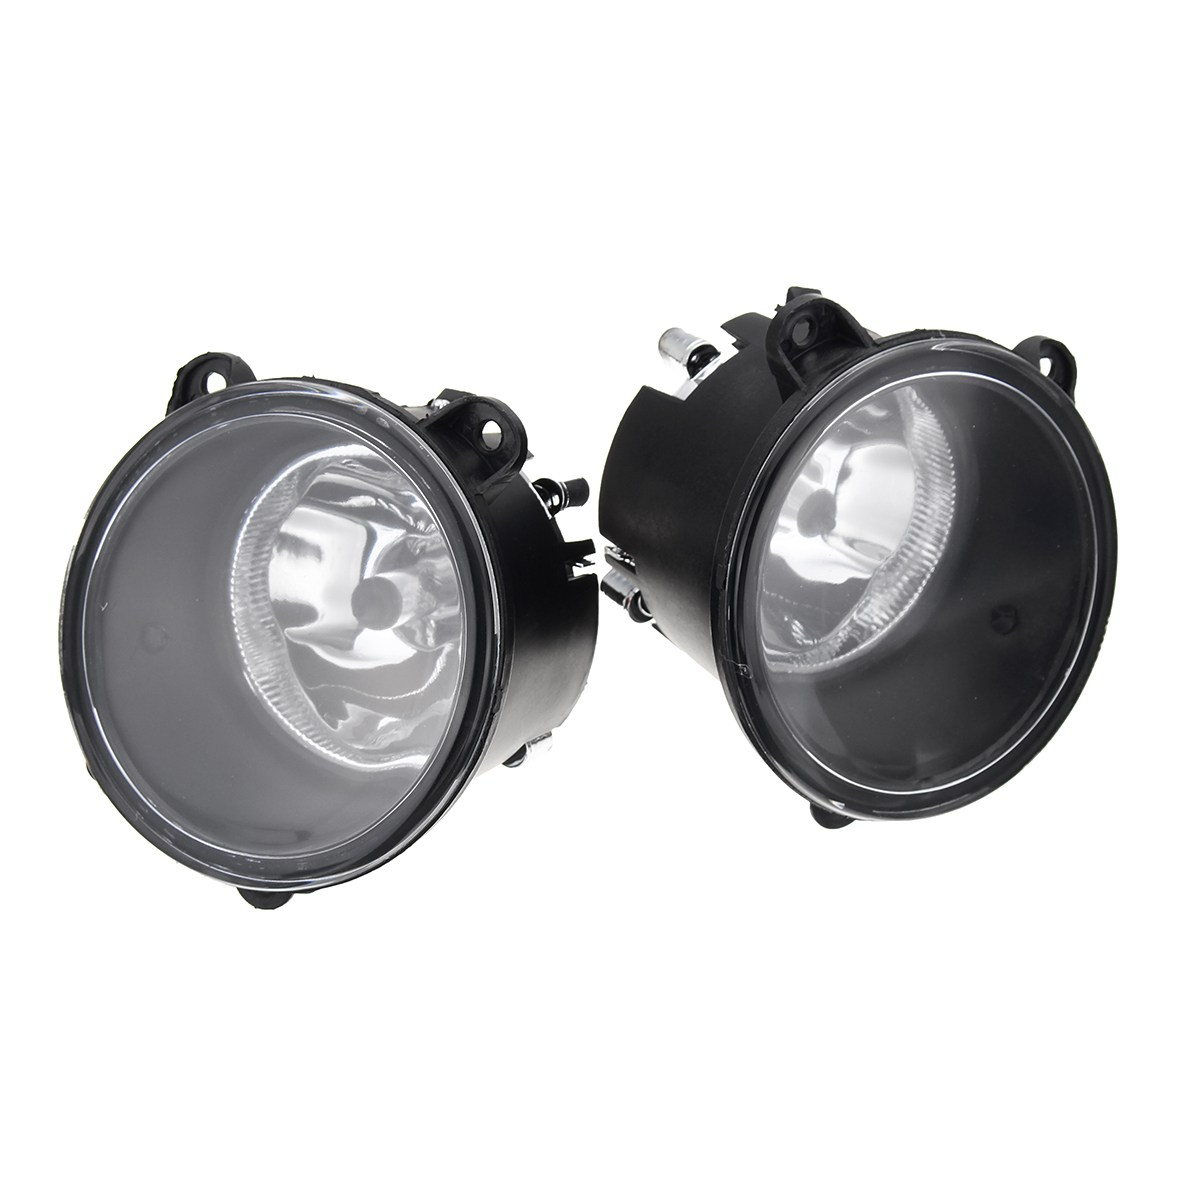 Pair Clear Car Front Fog Lights H11 Bulbs Lamp For Land Rover Discovery 3 X2 2003-2009 for opel astra h gtc 2005 15 h11 wiring harness sockets wire connector switch 2 fog lights drl front bumper 5d lens led lamp